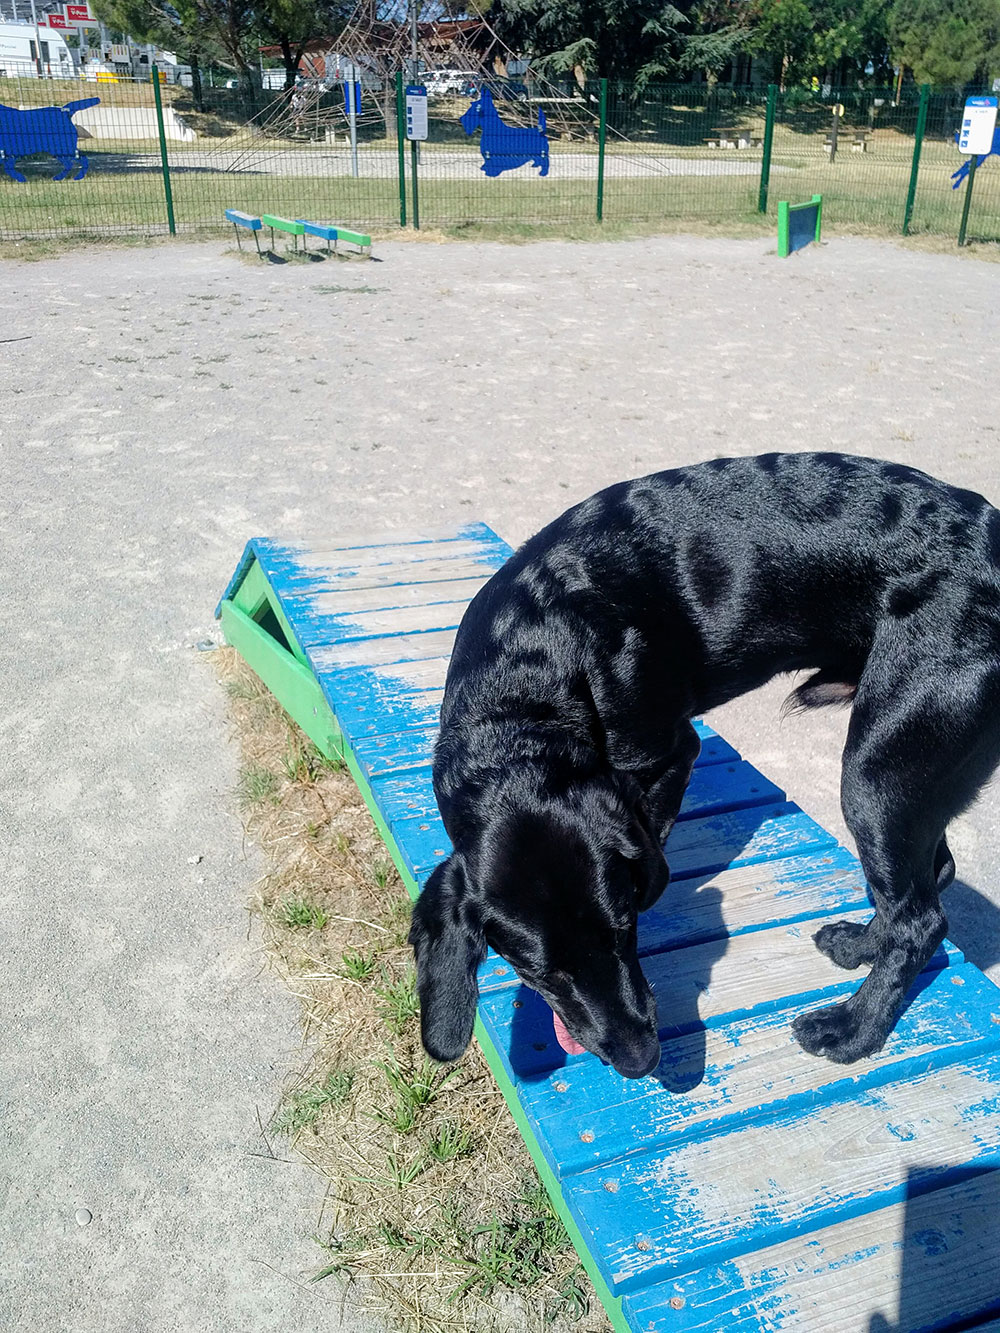 Filou enjoyed a good romp around in the doggy play park when we stopped at the Montelimar aire for nougat (natch) and melons